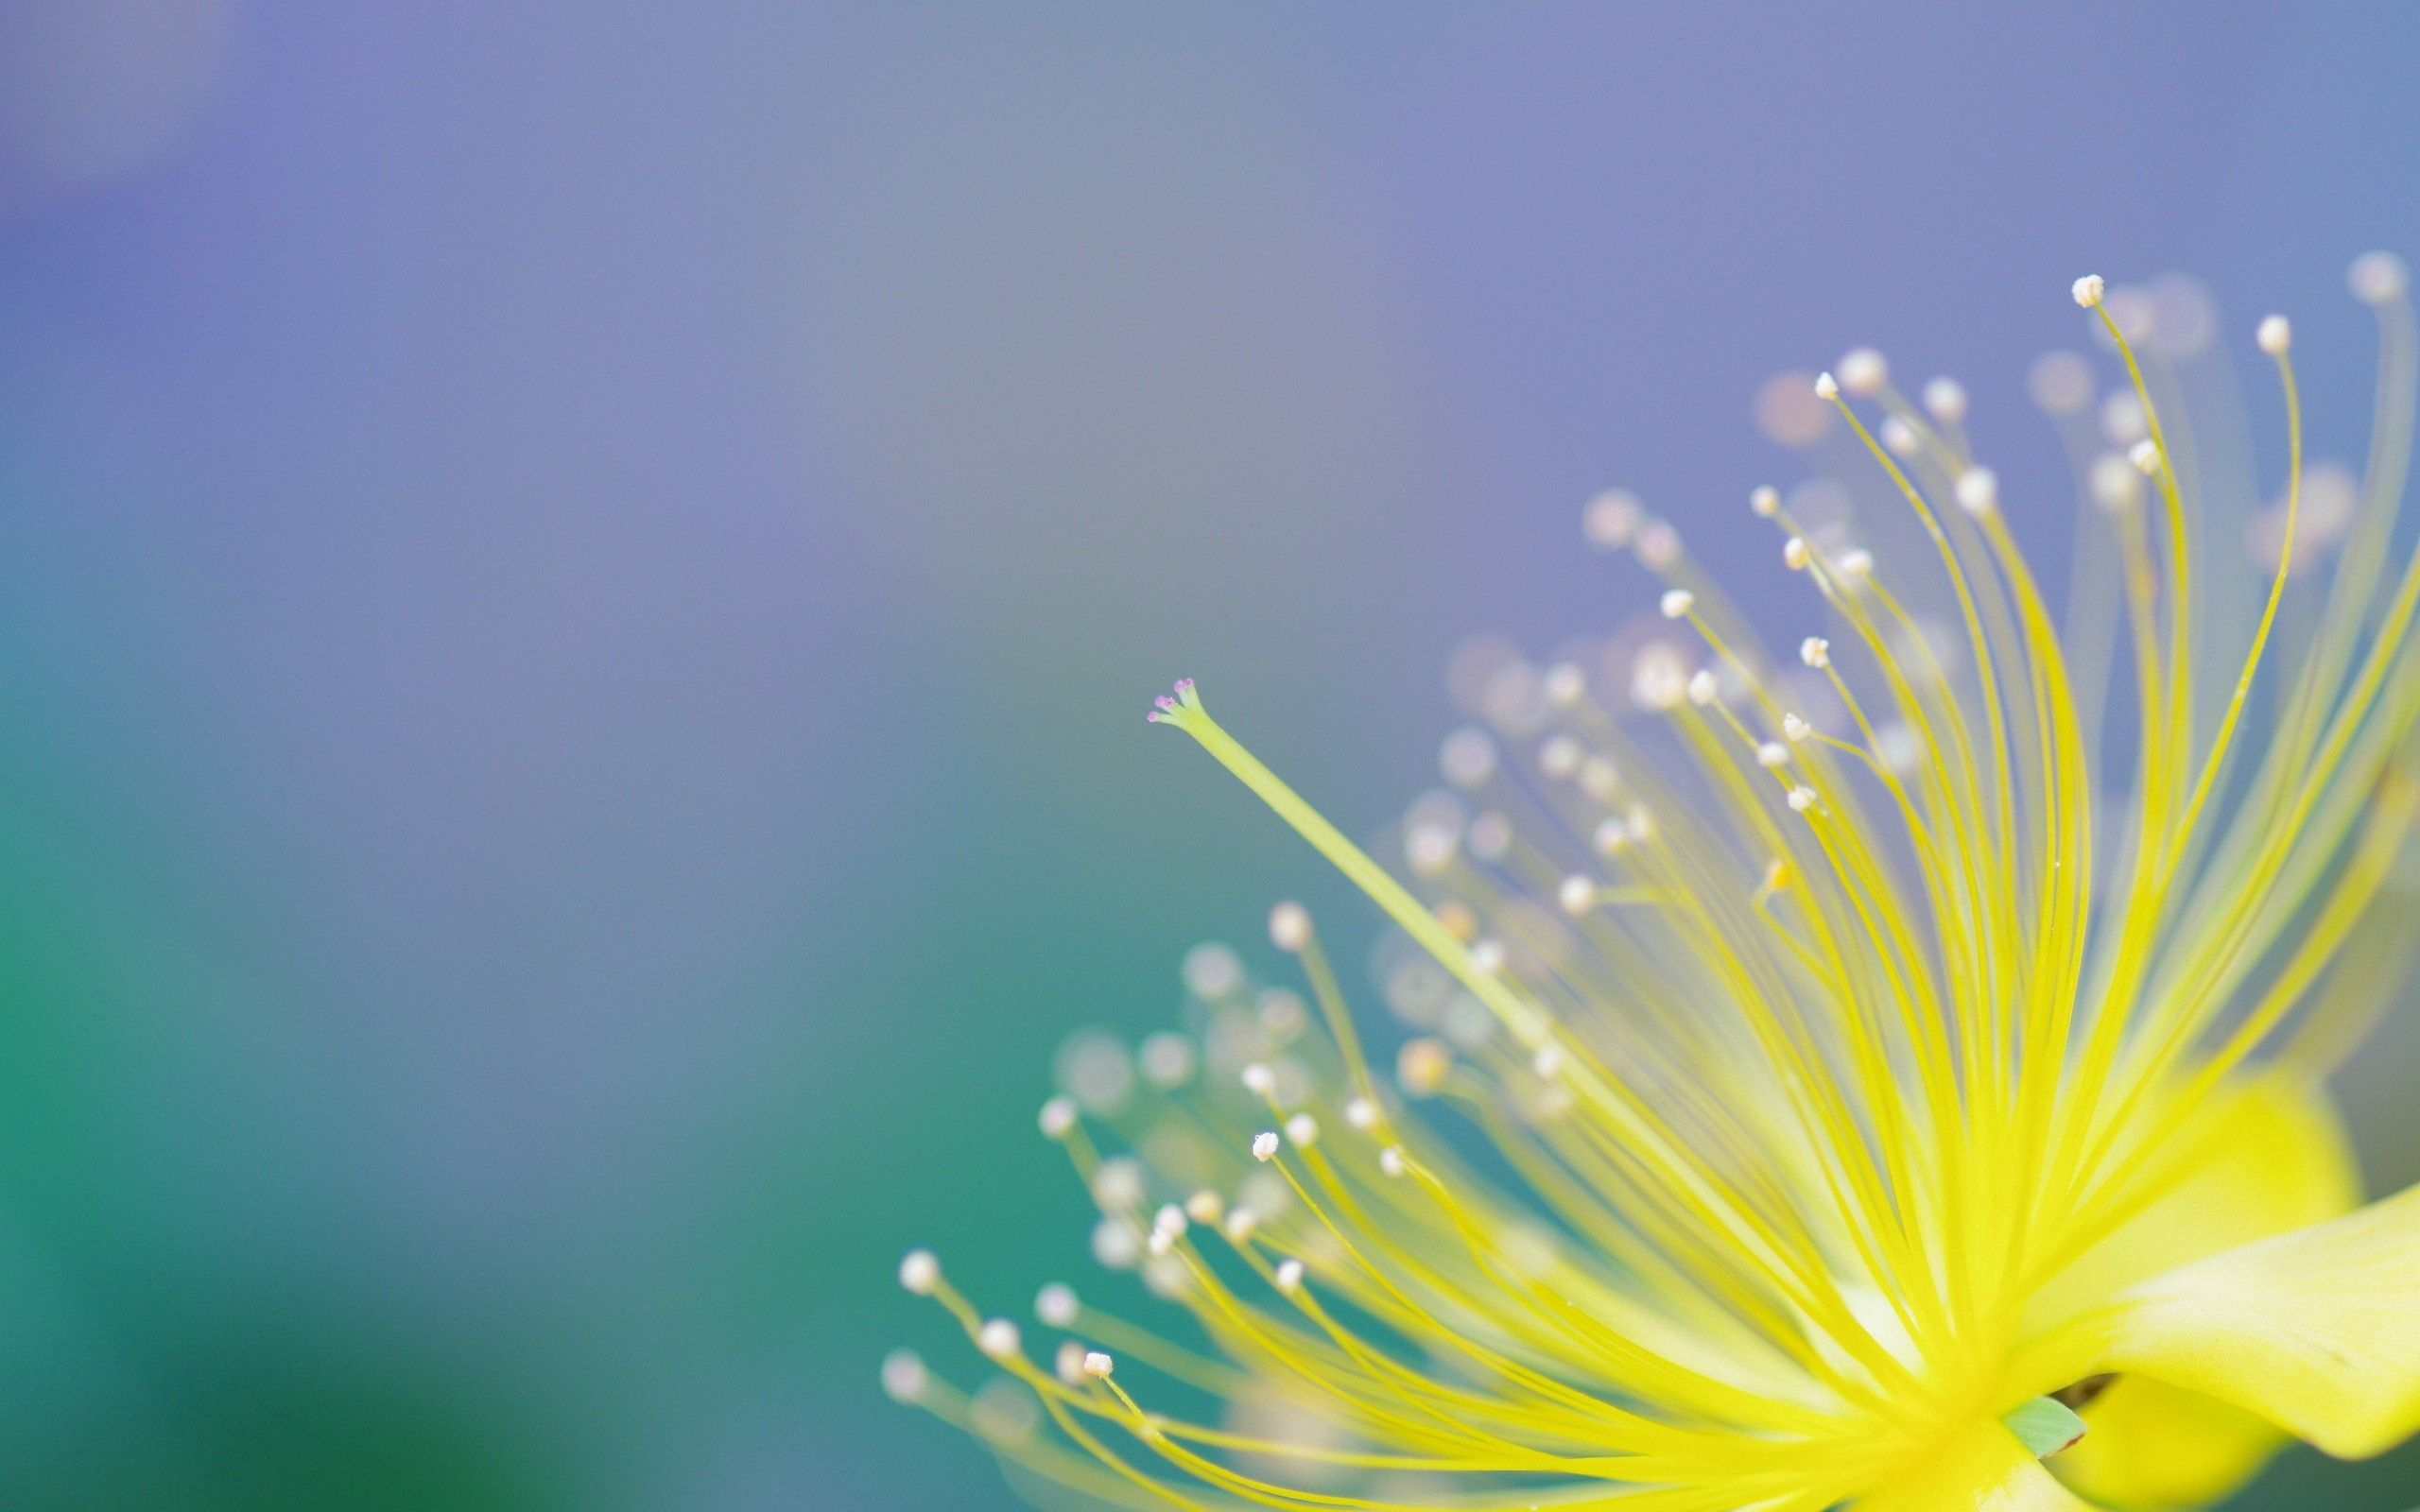 121811 download wallpaper Background, Flower, Plant, Macro, Petals screensavers and pictures for free